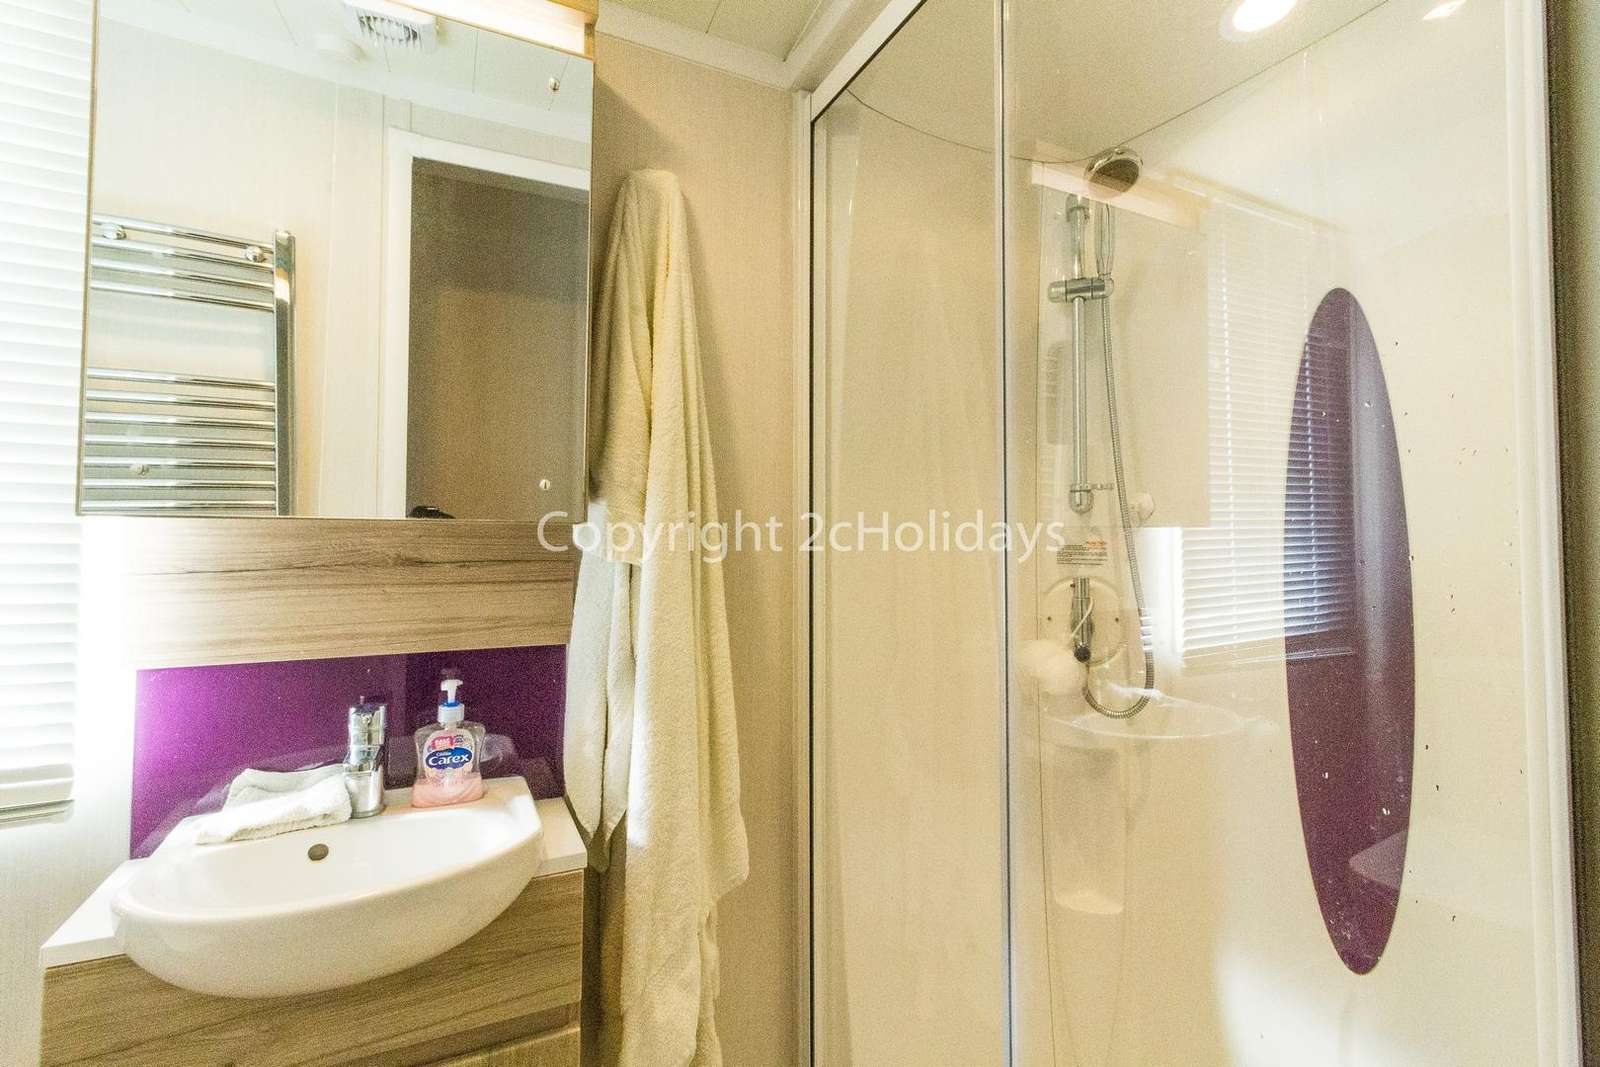 We ensure all our holiday homes are cleaned to high standard